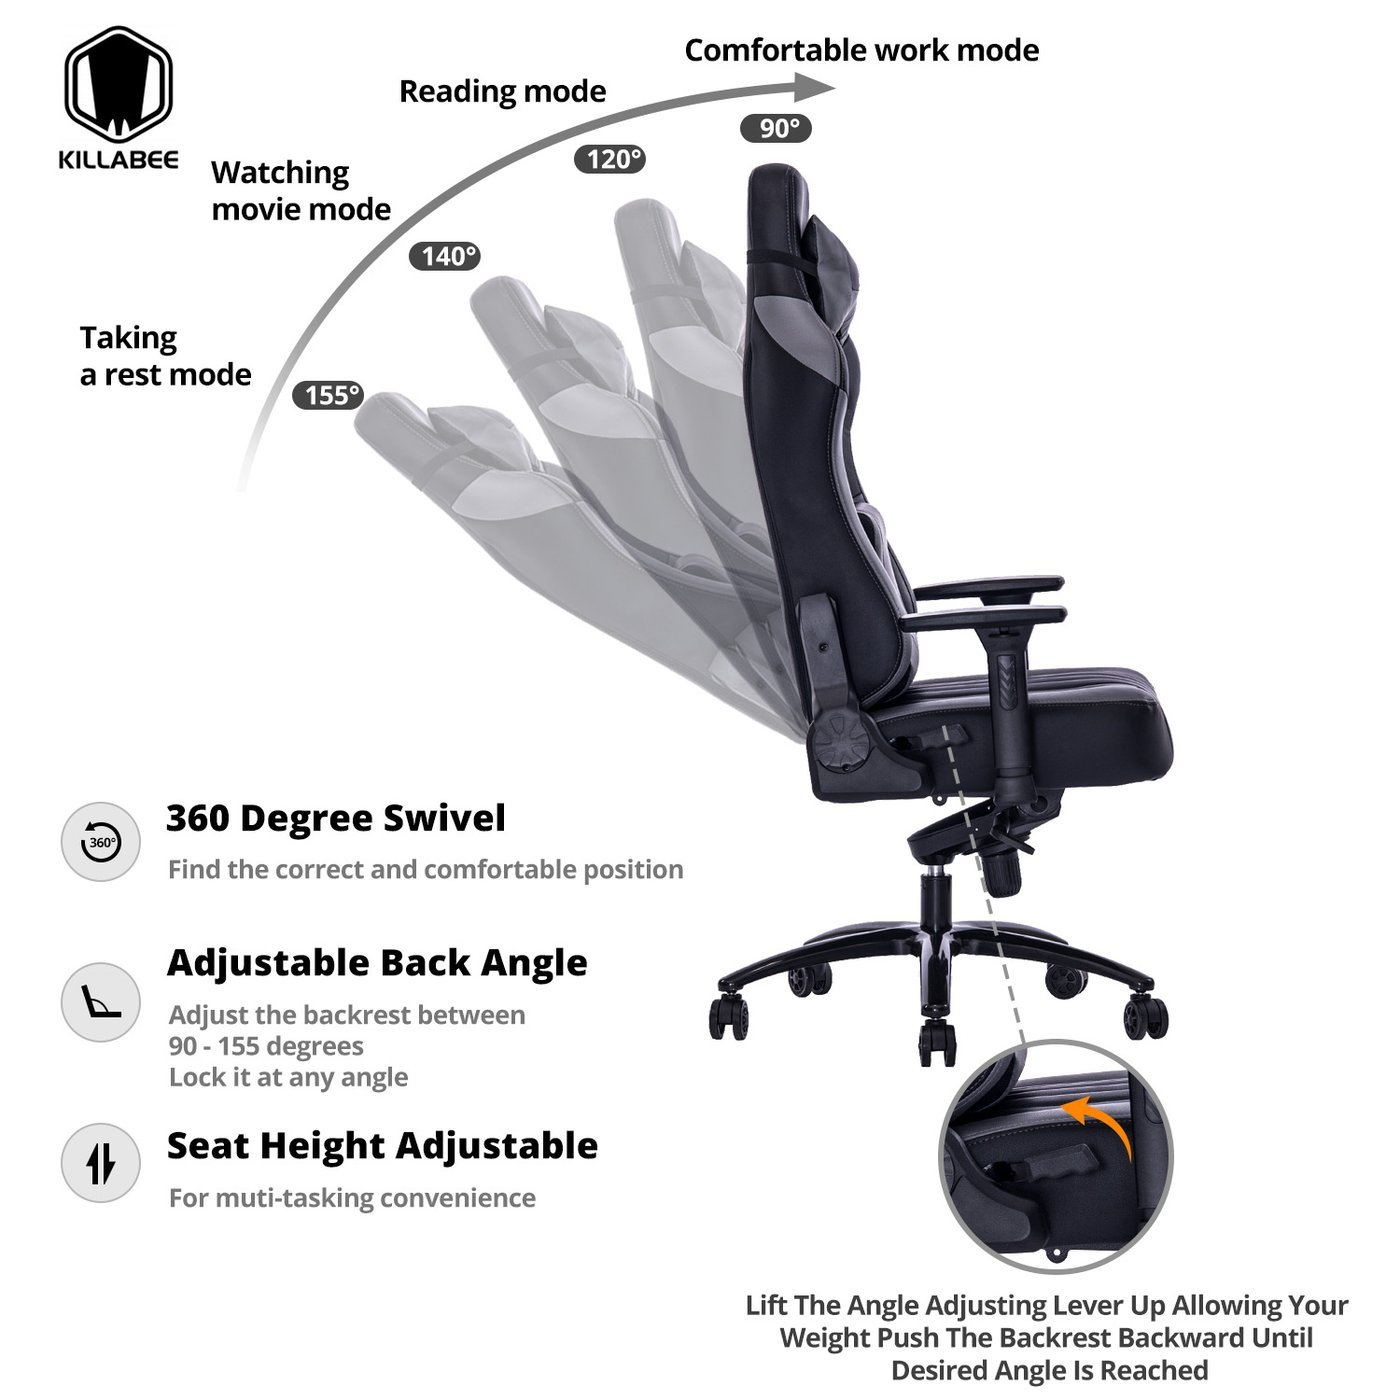 killabee gaming chair reclinable